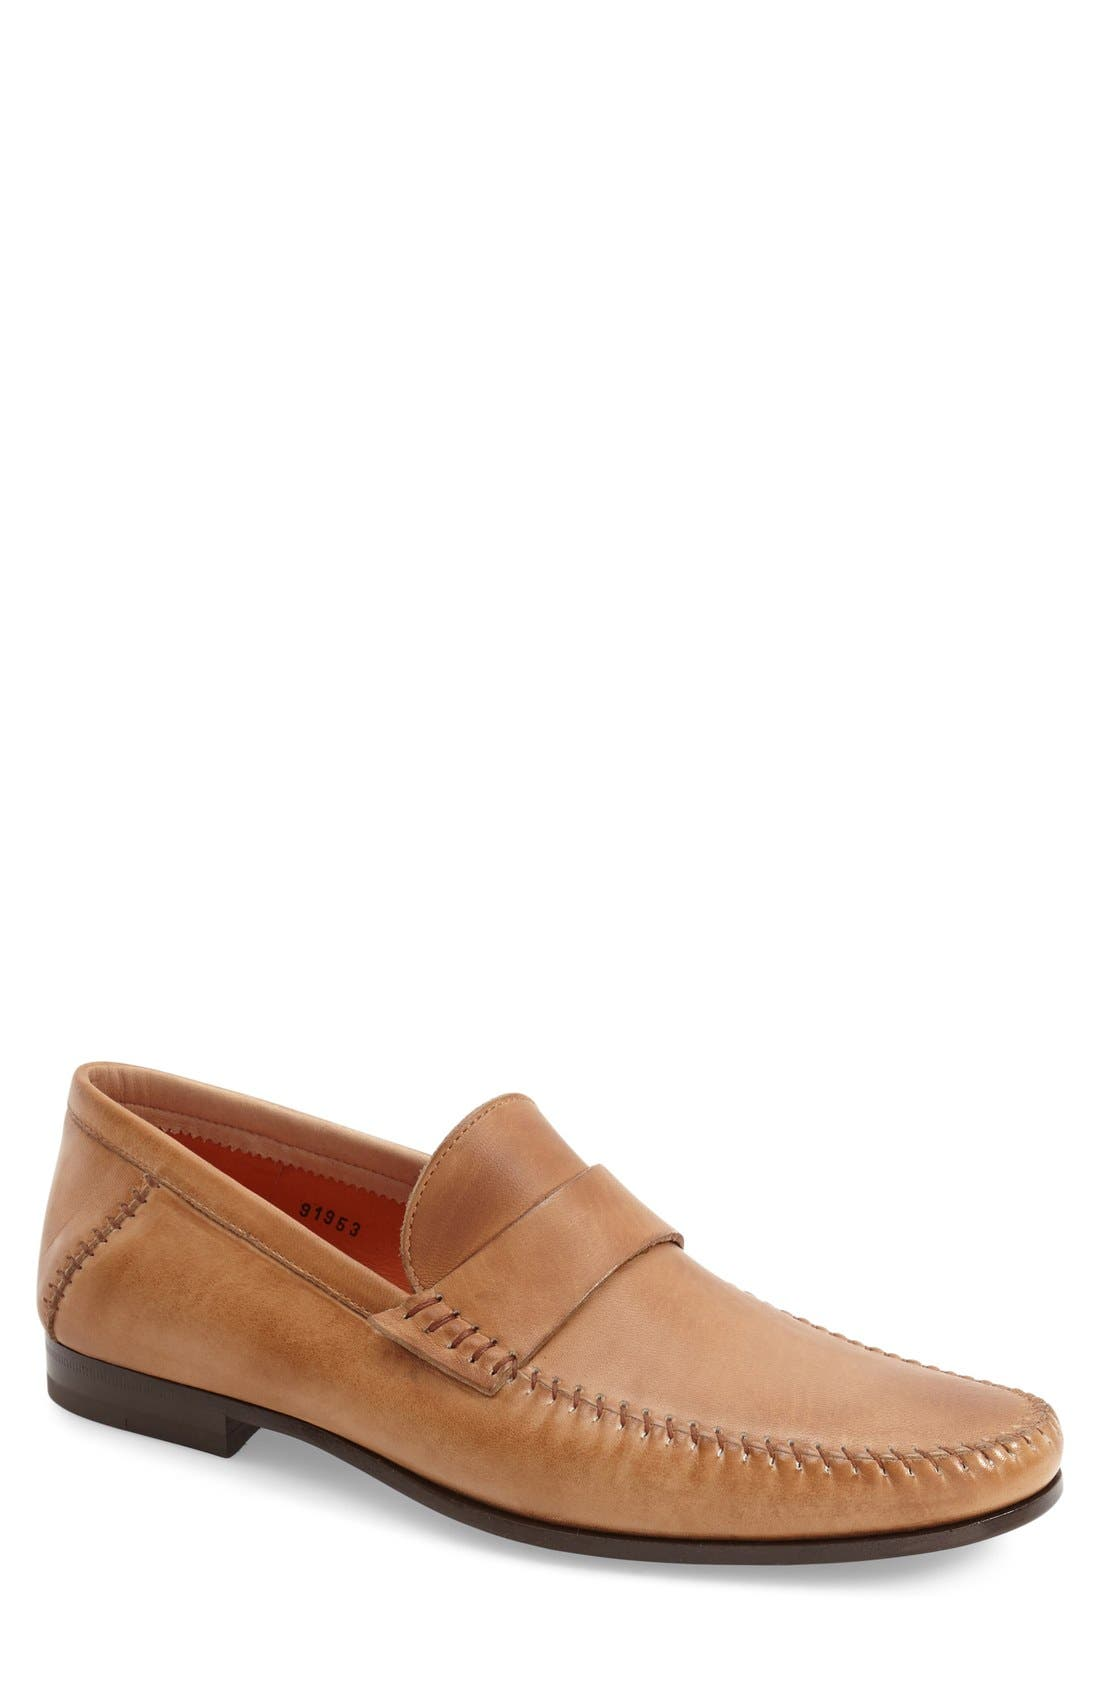 'Paine' Leather Loafer,                             Main thumbnail 1, color,                             260